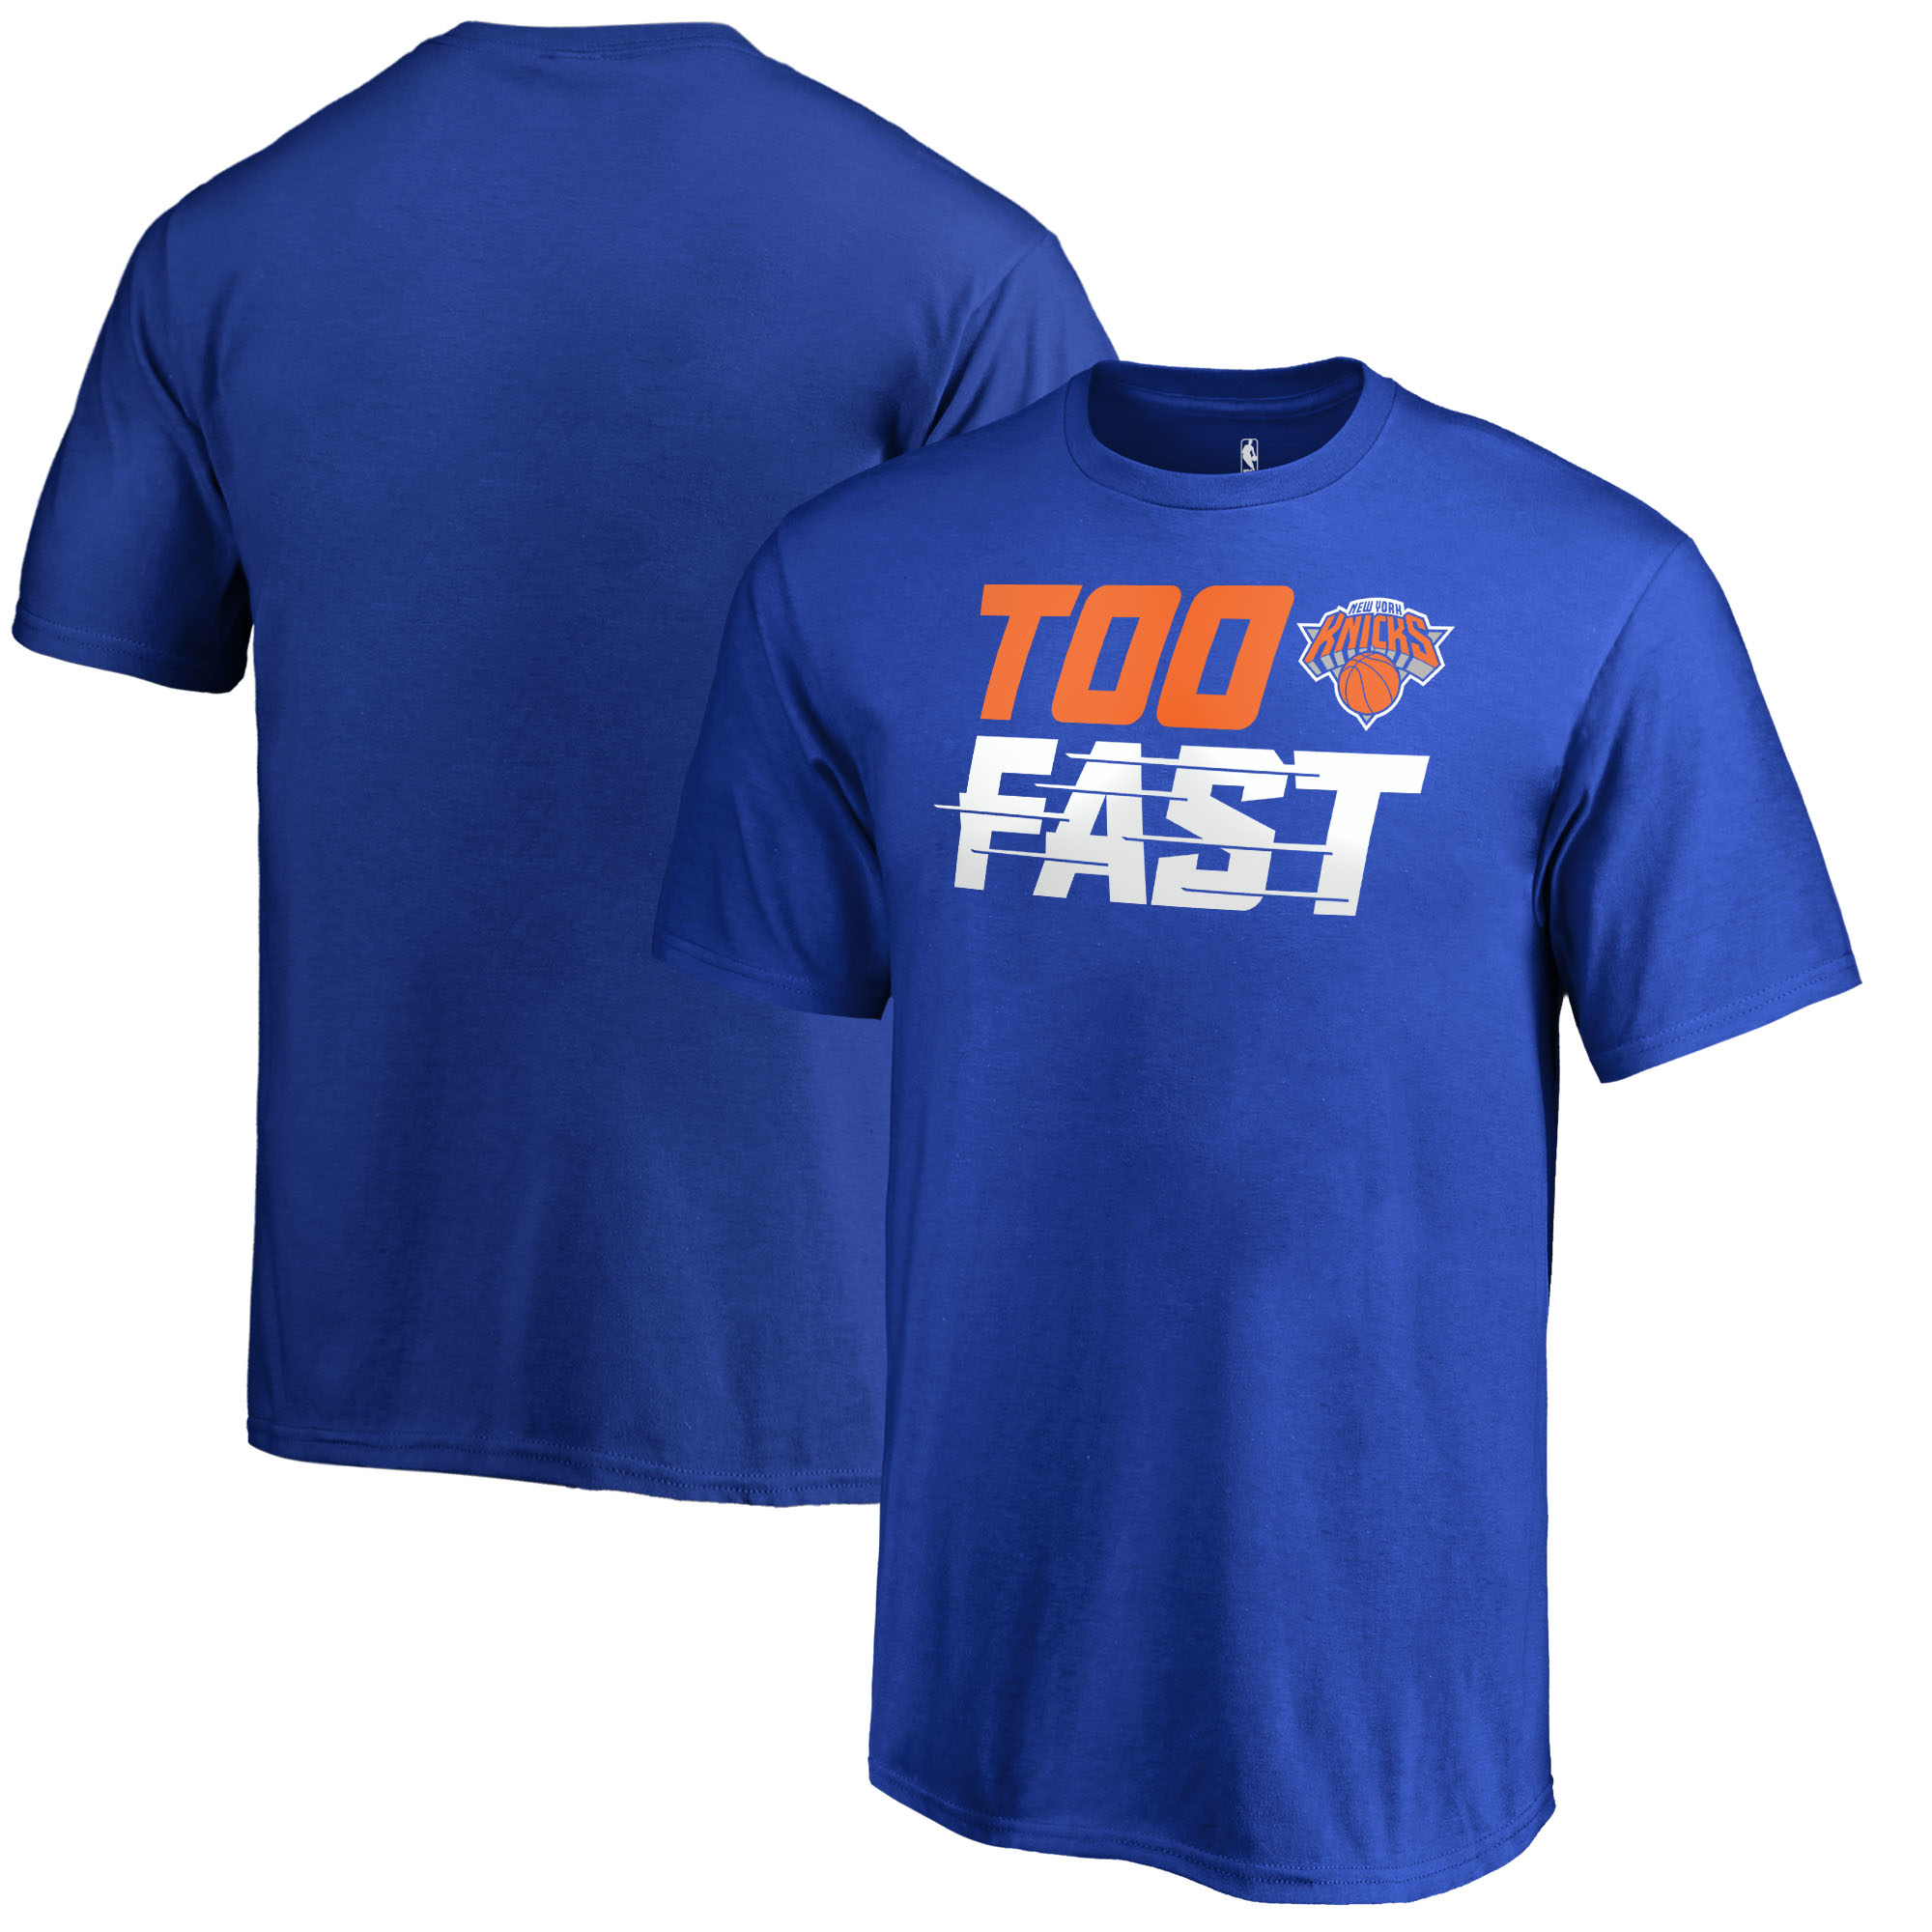 New York Knicks Fanatics Branded Youth Too Fast T-Shirt - Blue